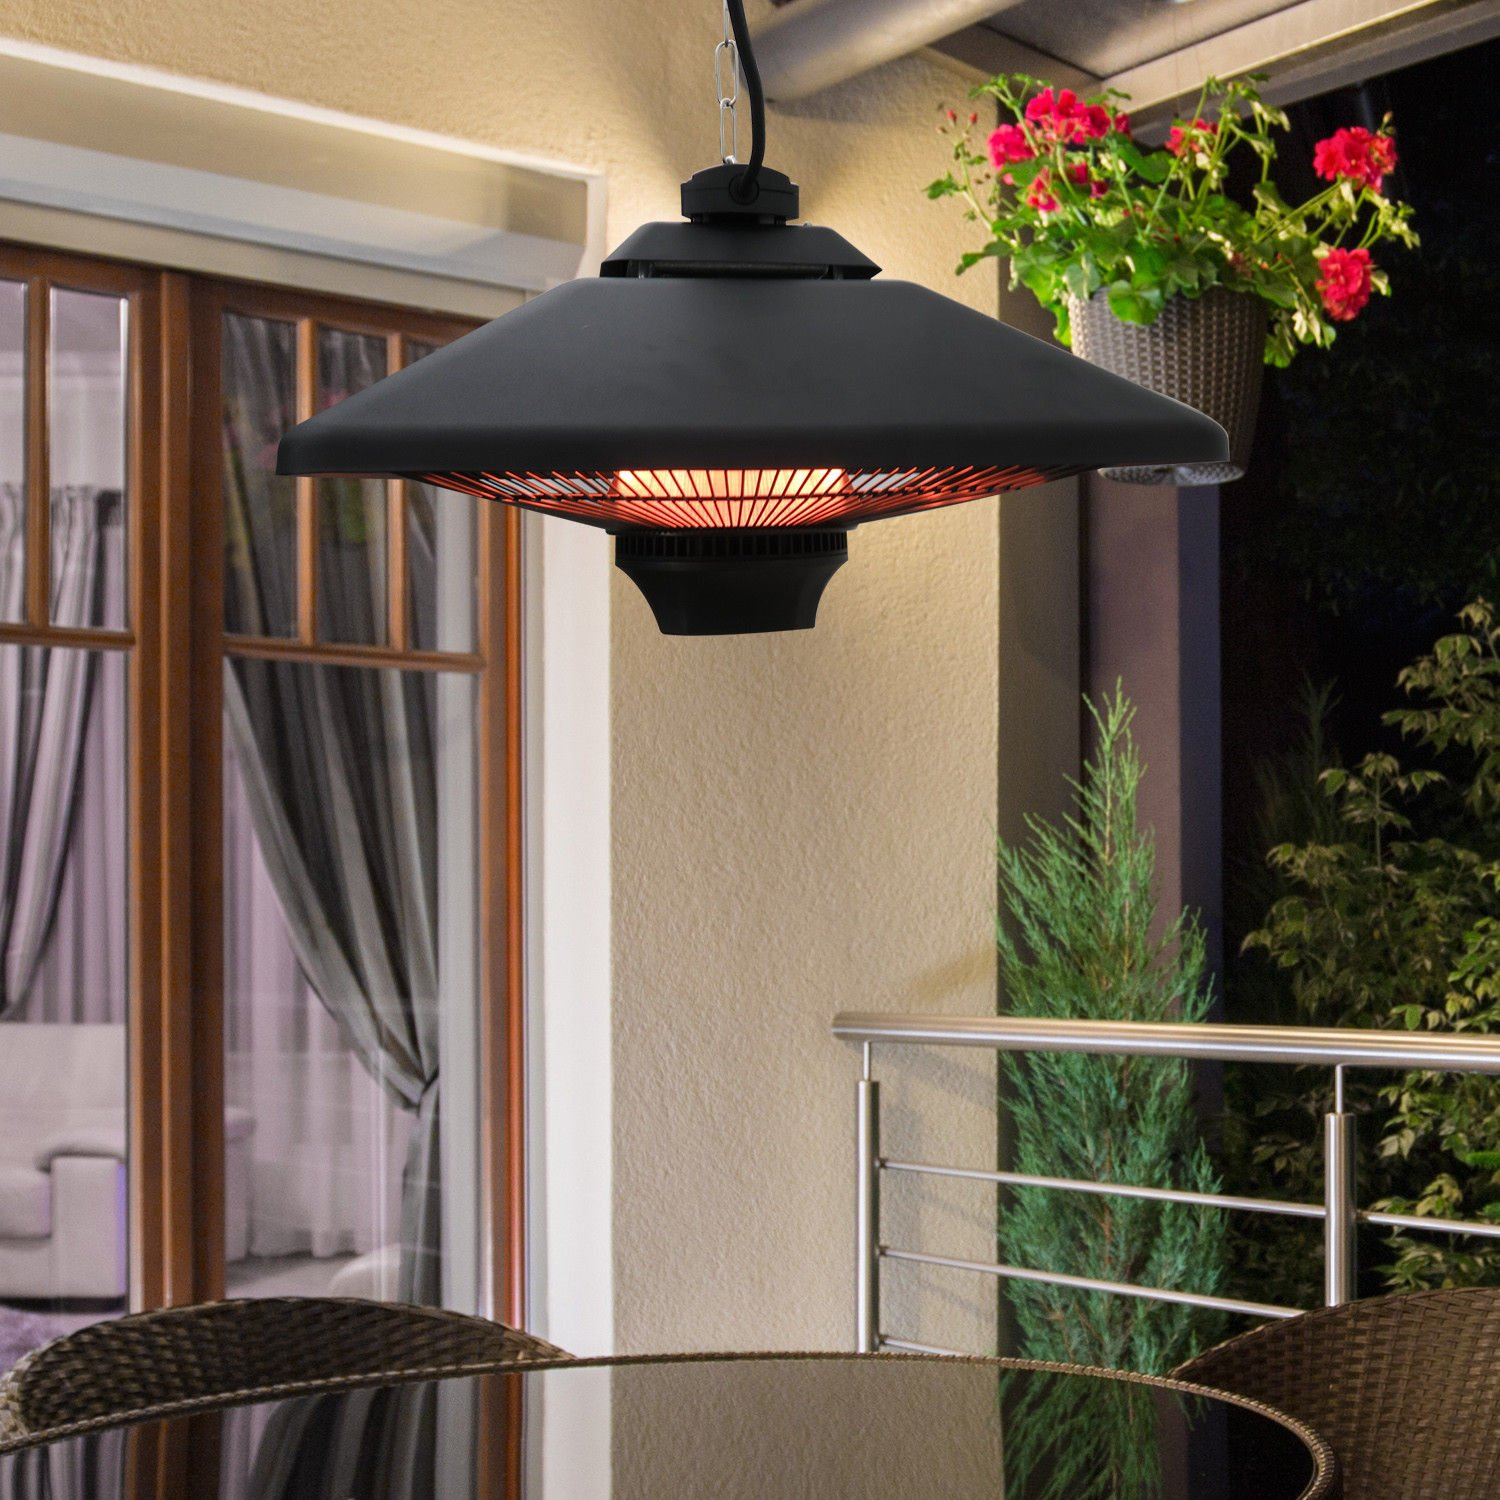 New MTN G 1500w Outdoor Hanging Ceiling Electric Halogen Patio Heater  Remote Control W/